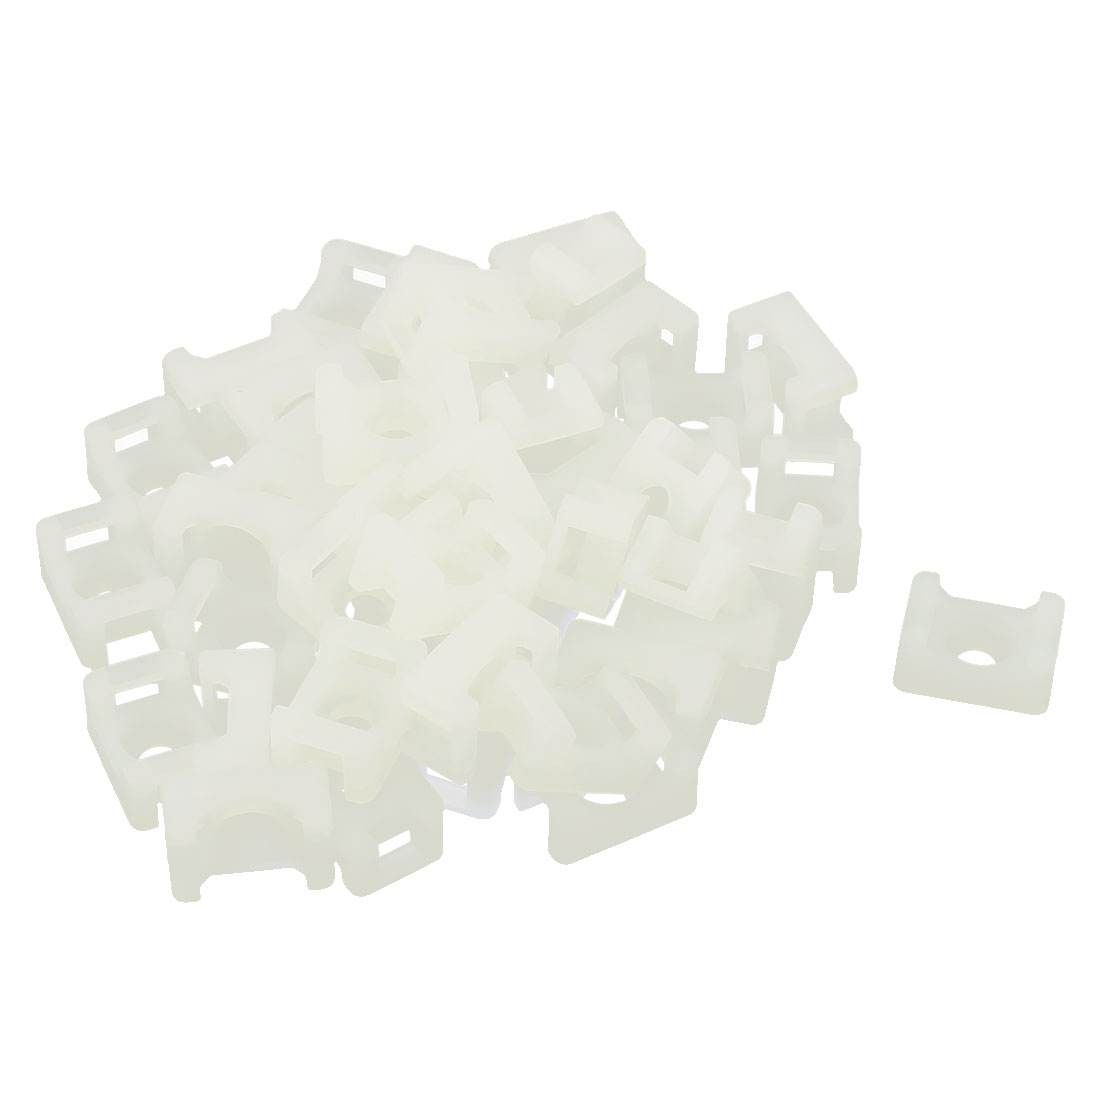 46pcs 5mm Cable Tie Mount Wire Buddle Saddle Type Plastic Holder White